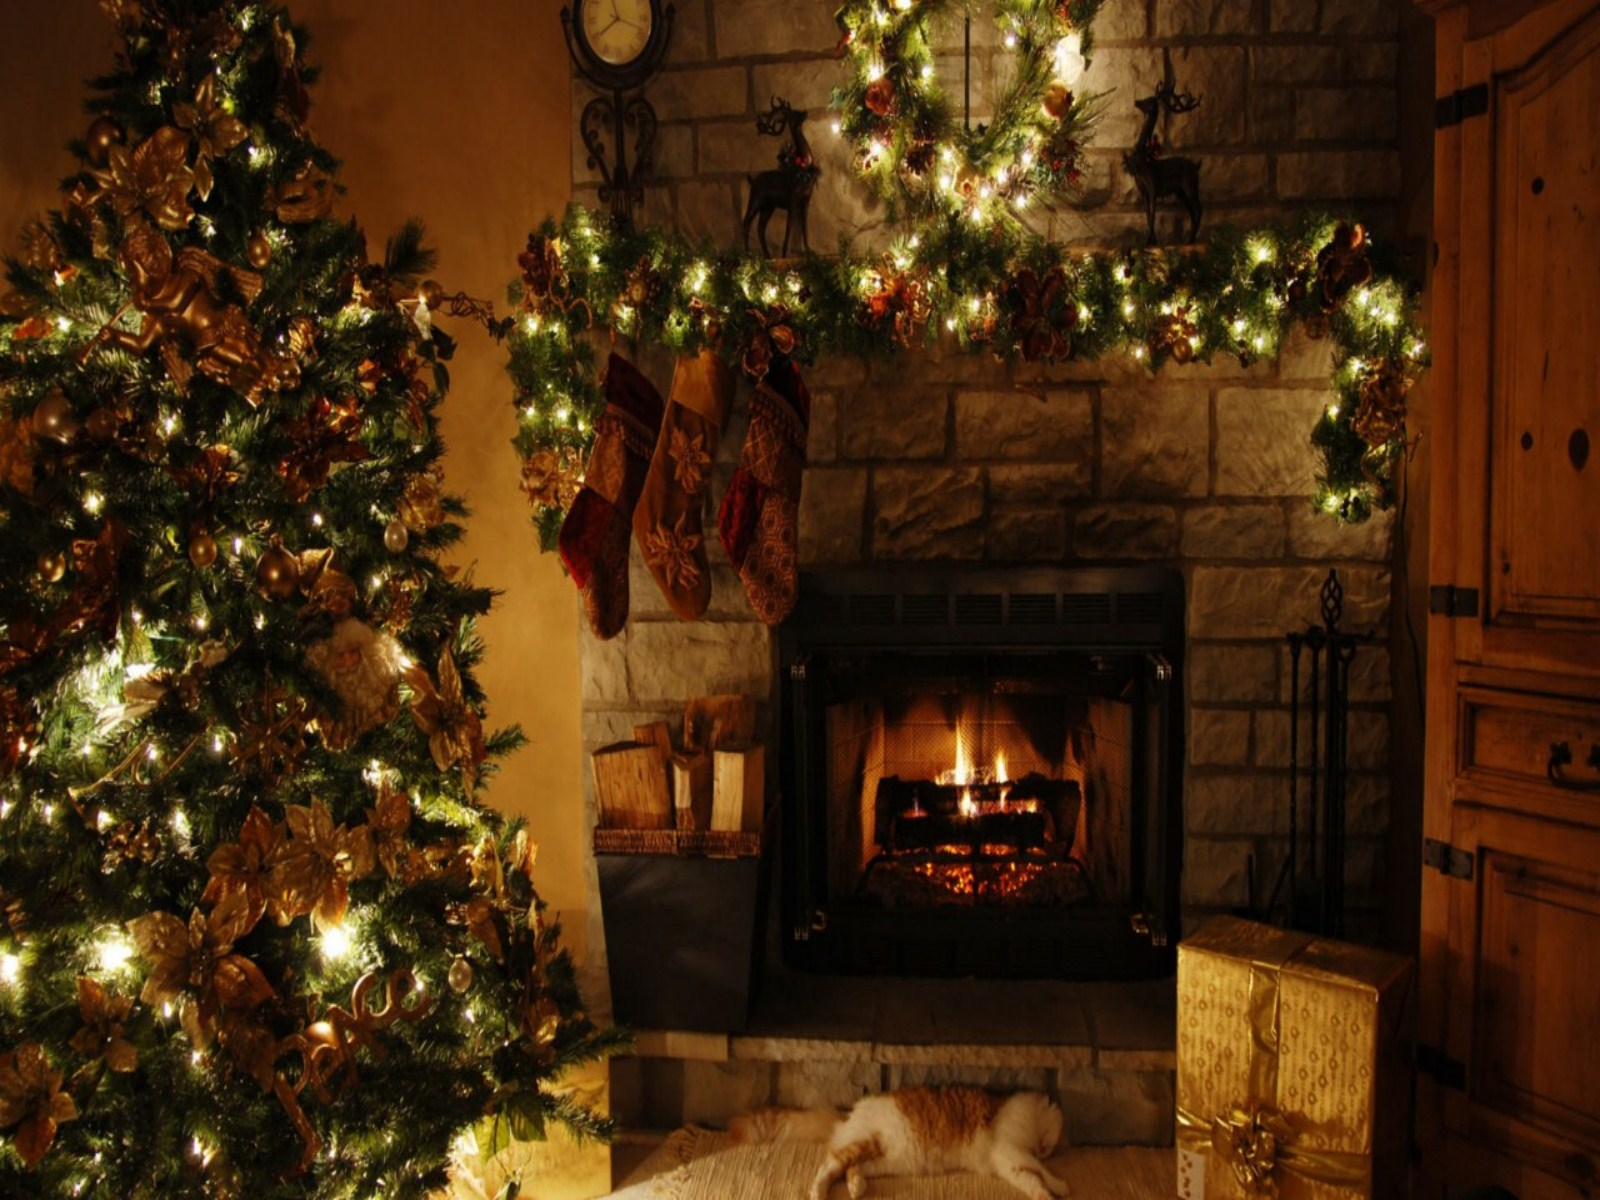 78 787830 christmas fireplace background wallpaper christmas fireplace old fashioned